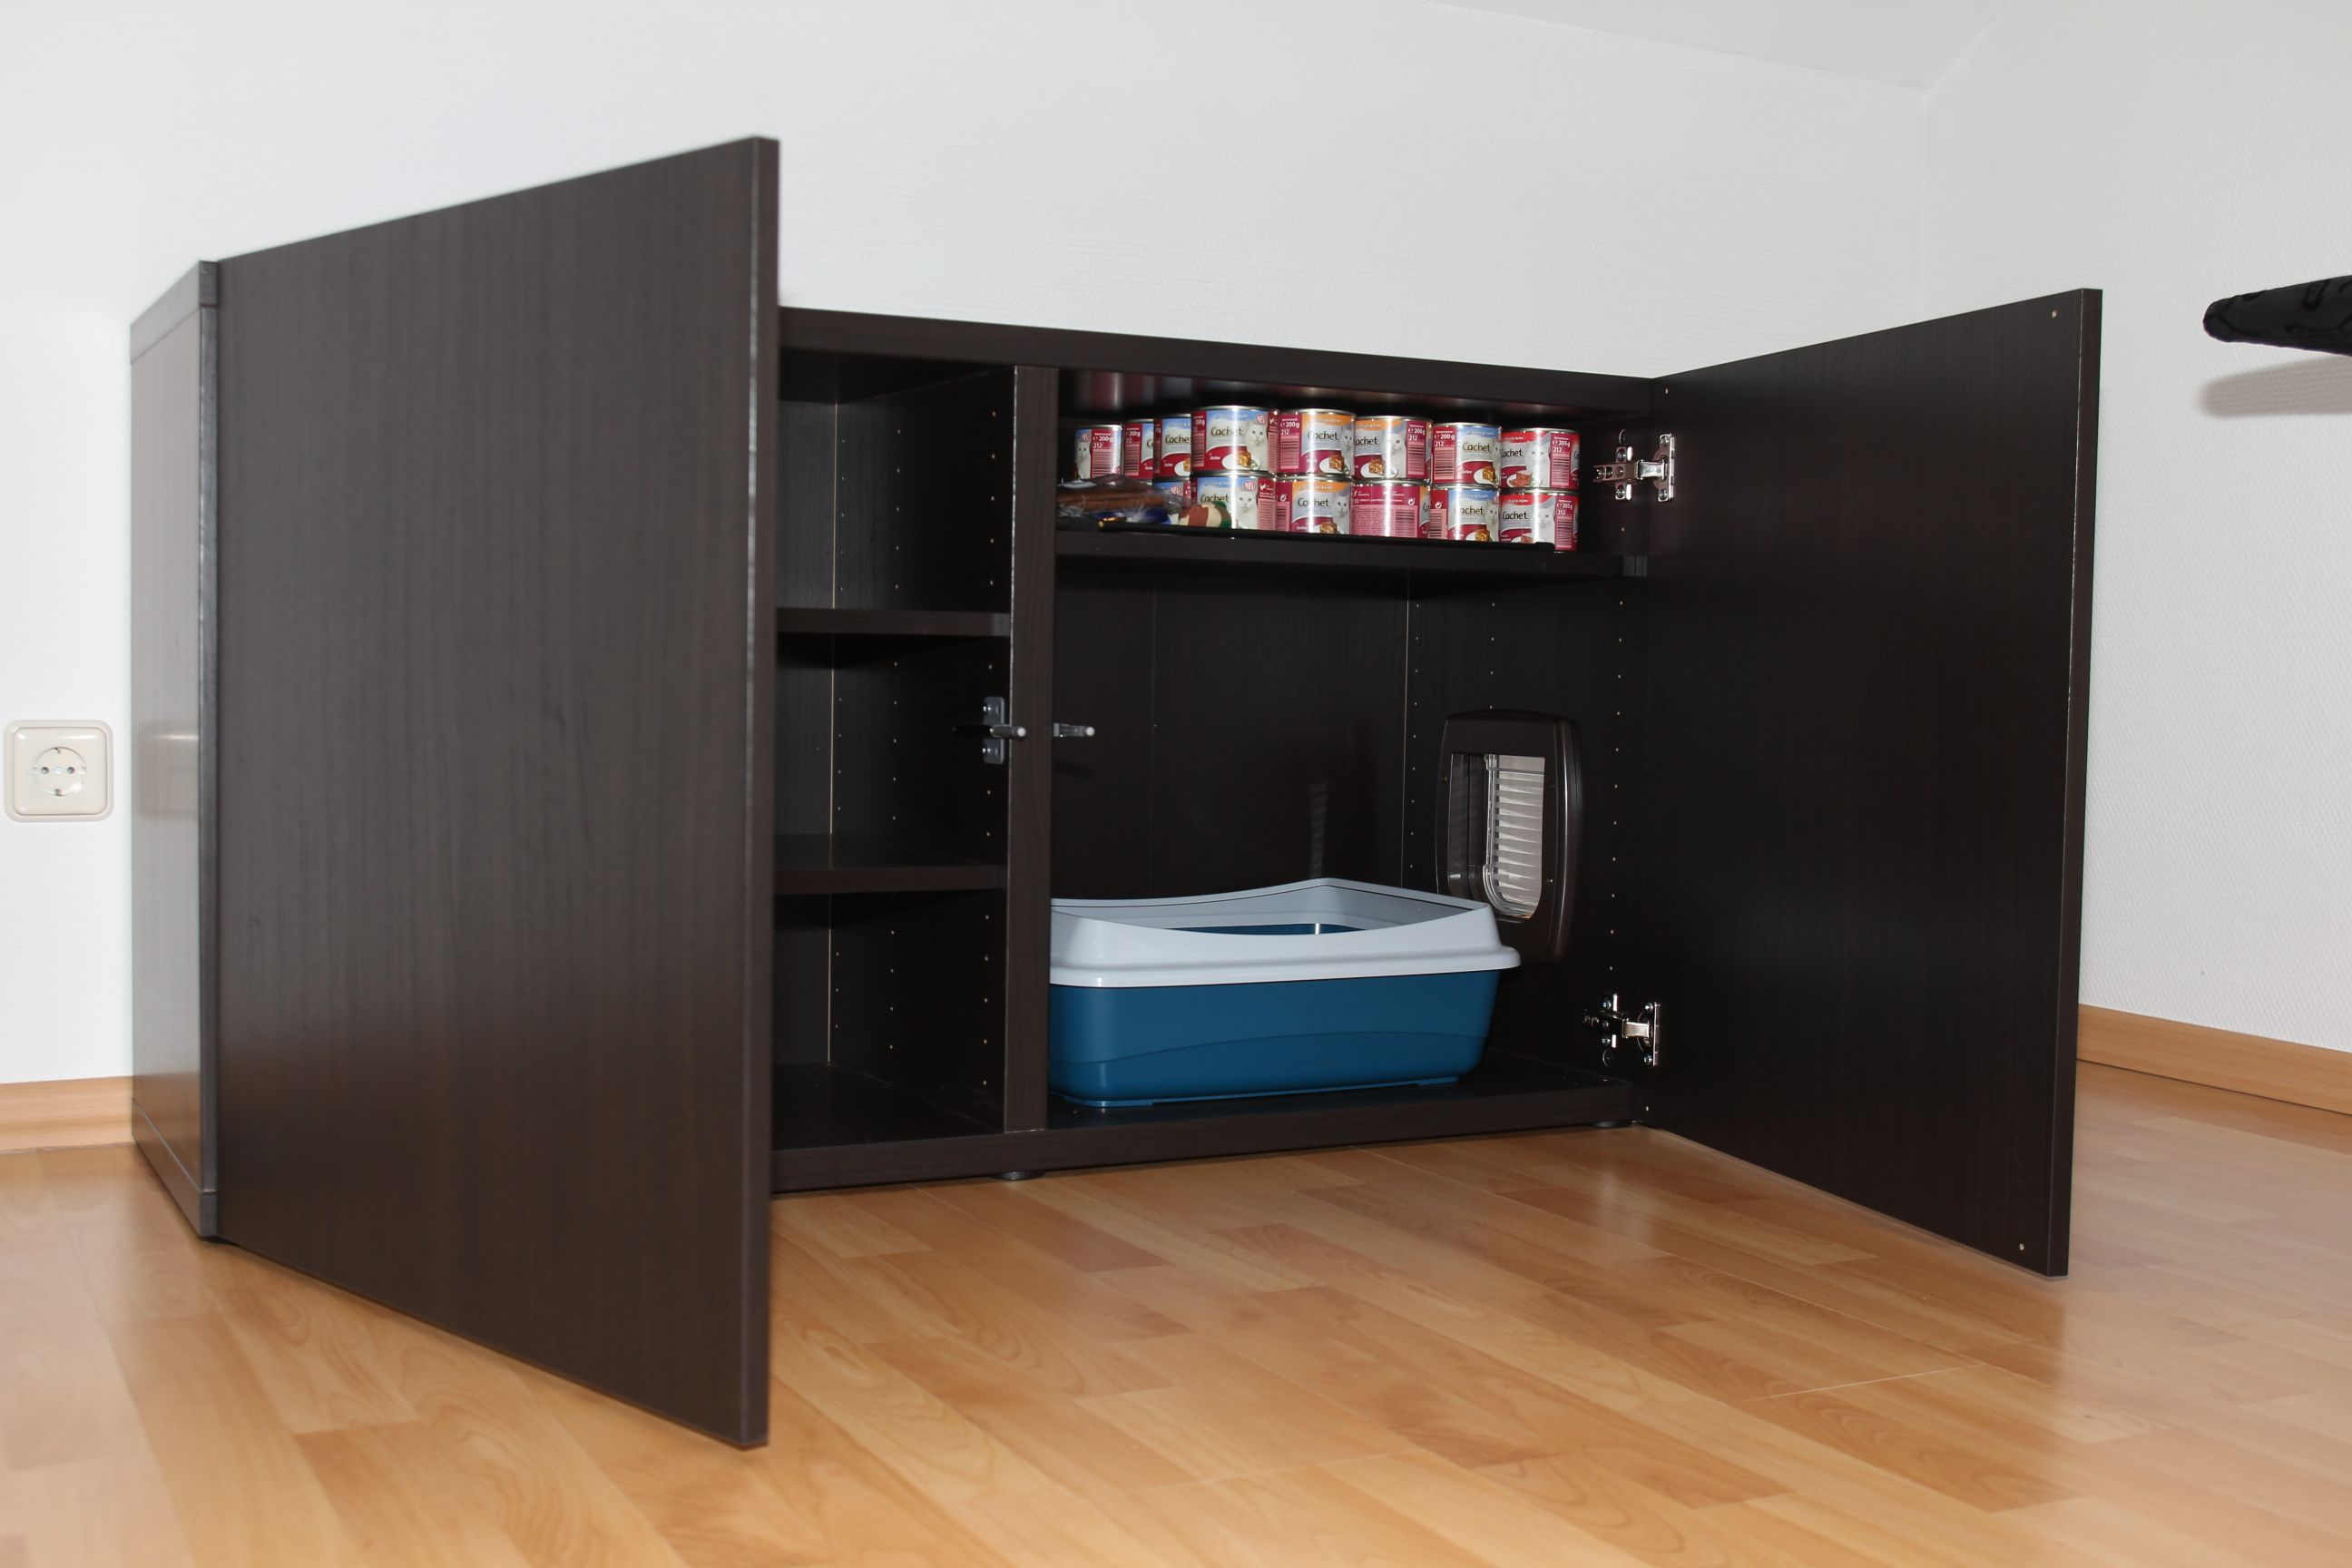 anleitung katzenklo im ikea schrank verstecken do it. Black Bedroom Furniture Sets. Home Design Ideas